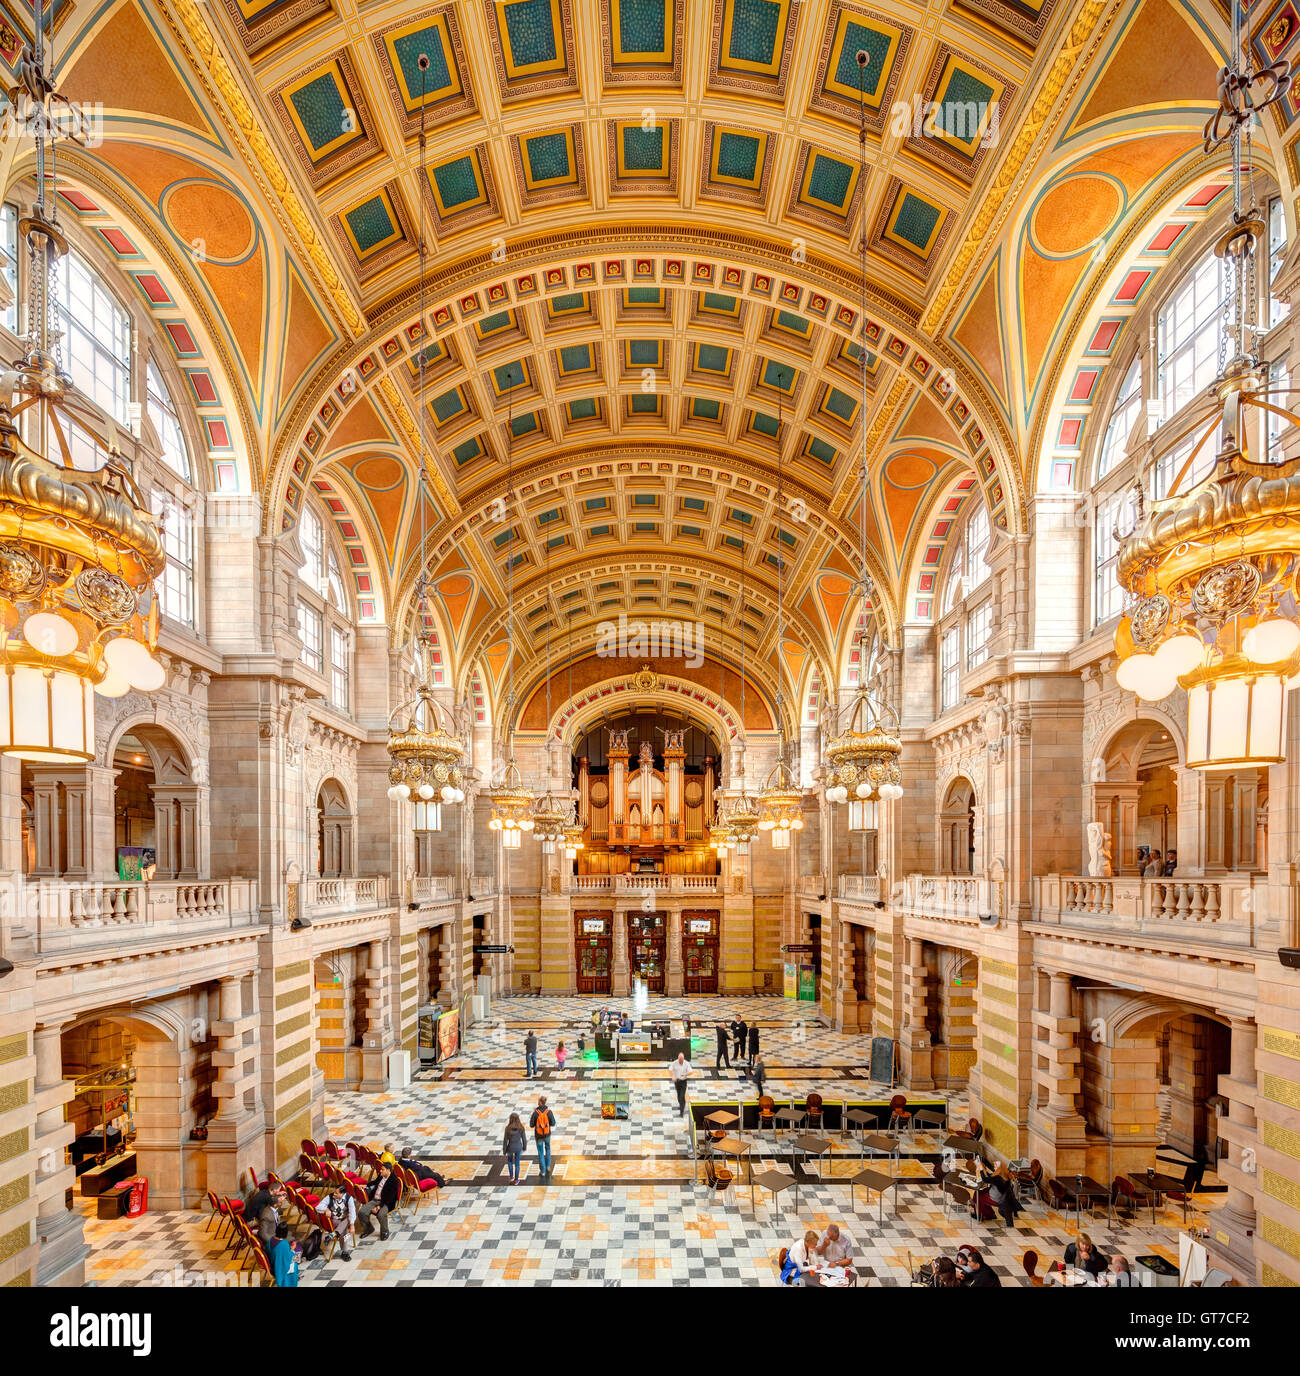 Glasgow Kelvingrove Art Gallery and Museum interior. Central Hall and entrance. - Stock Image